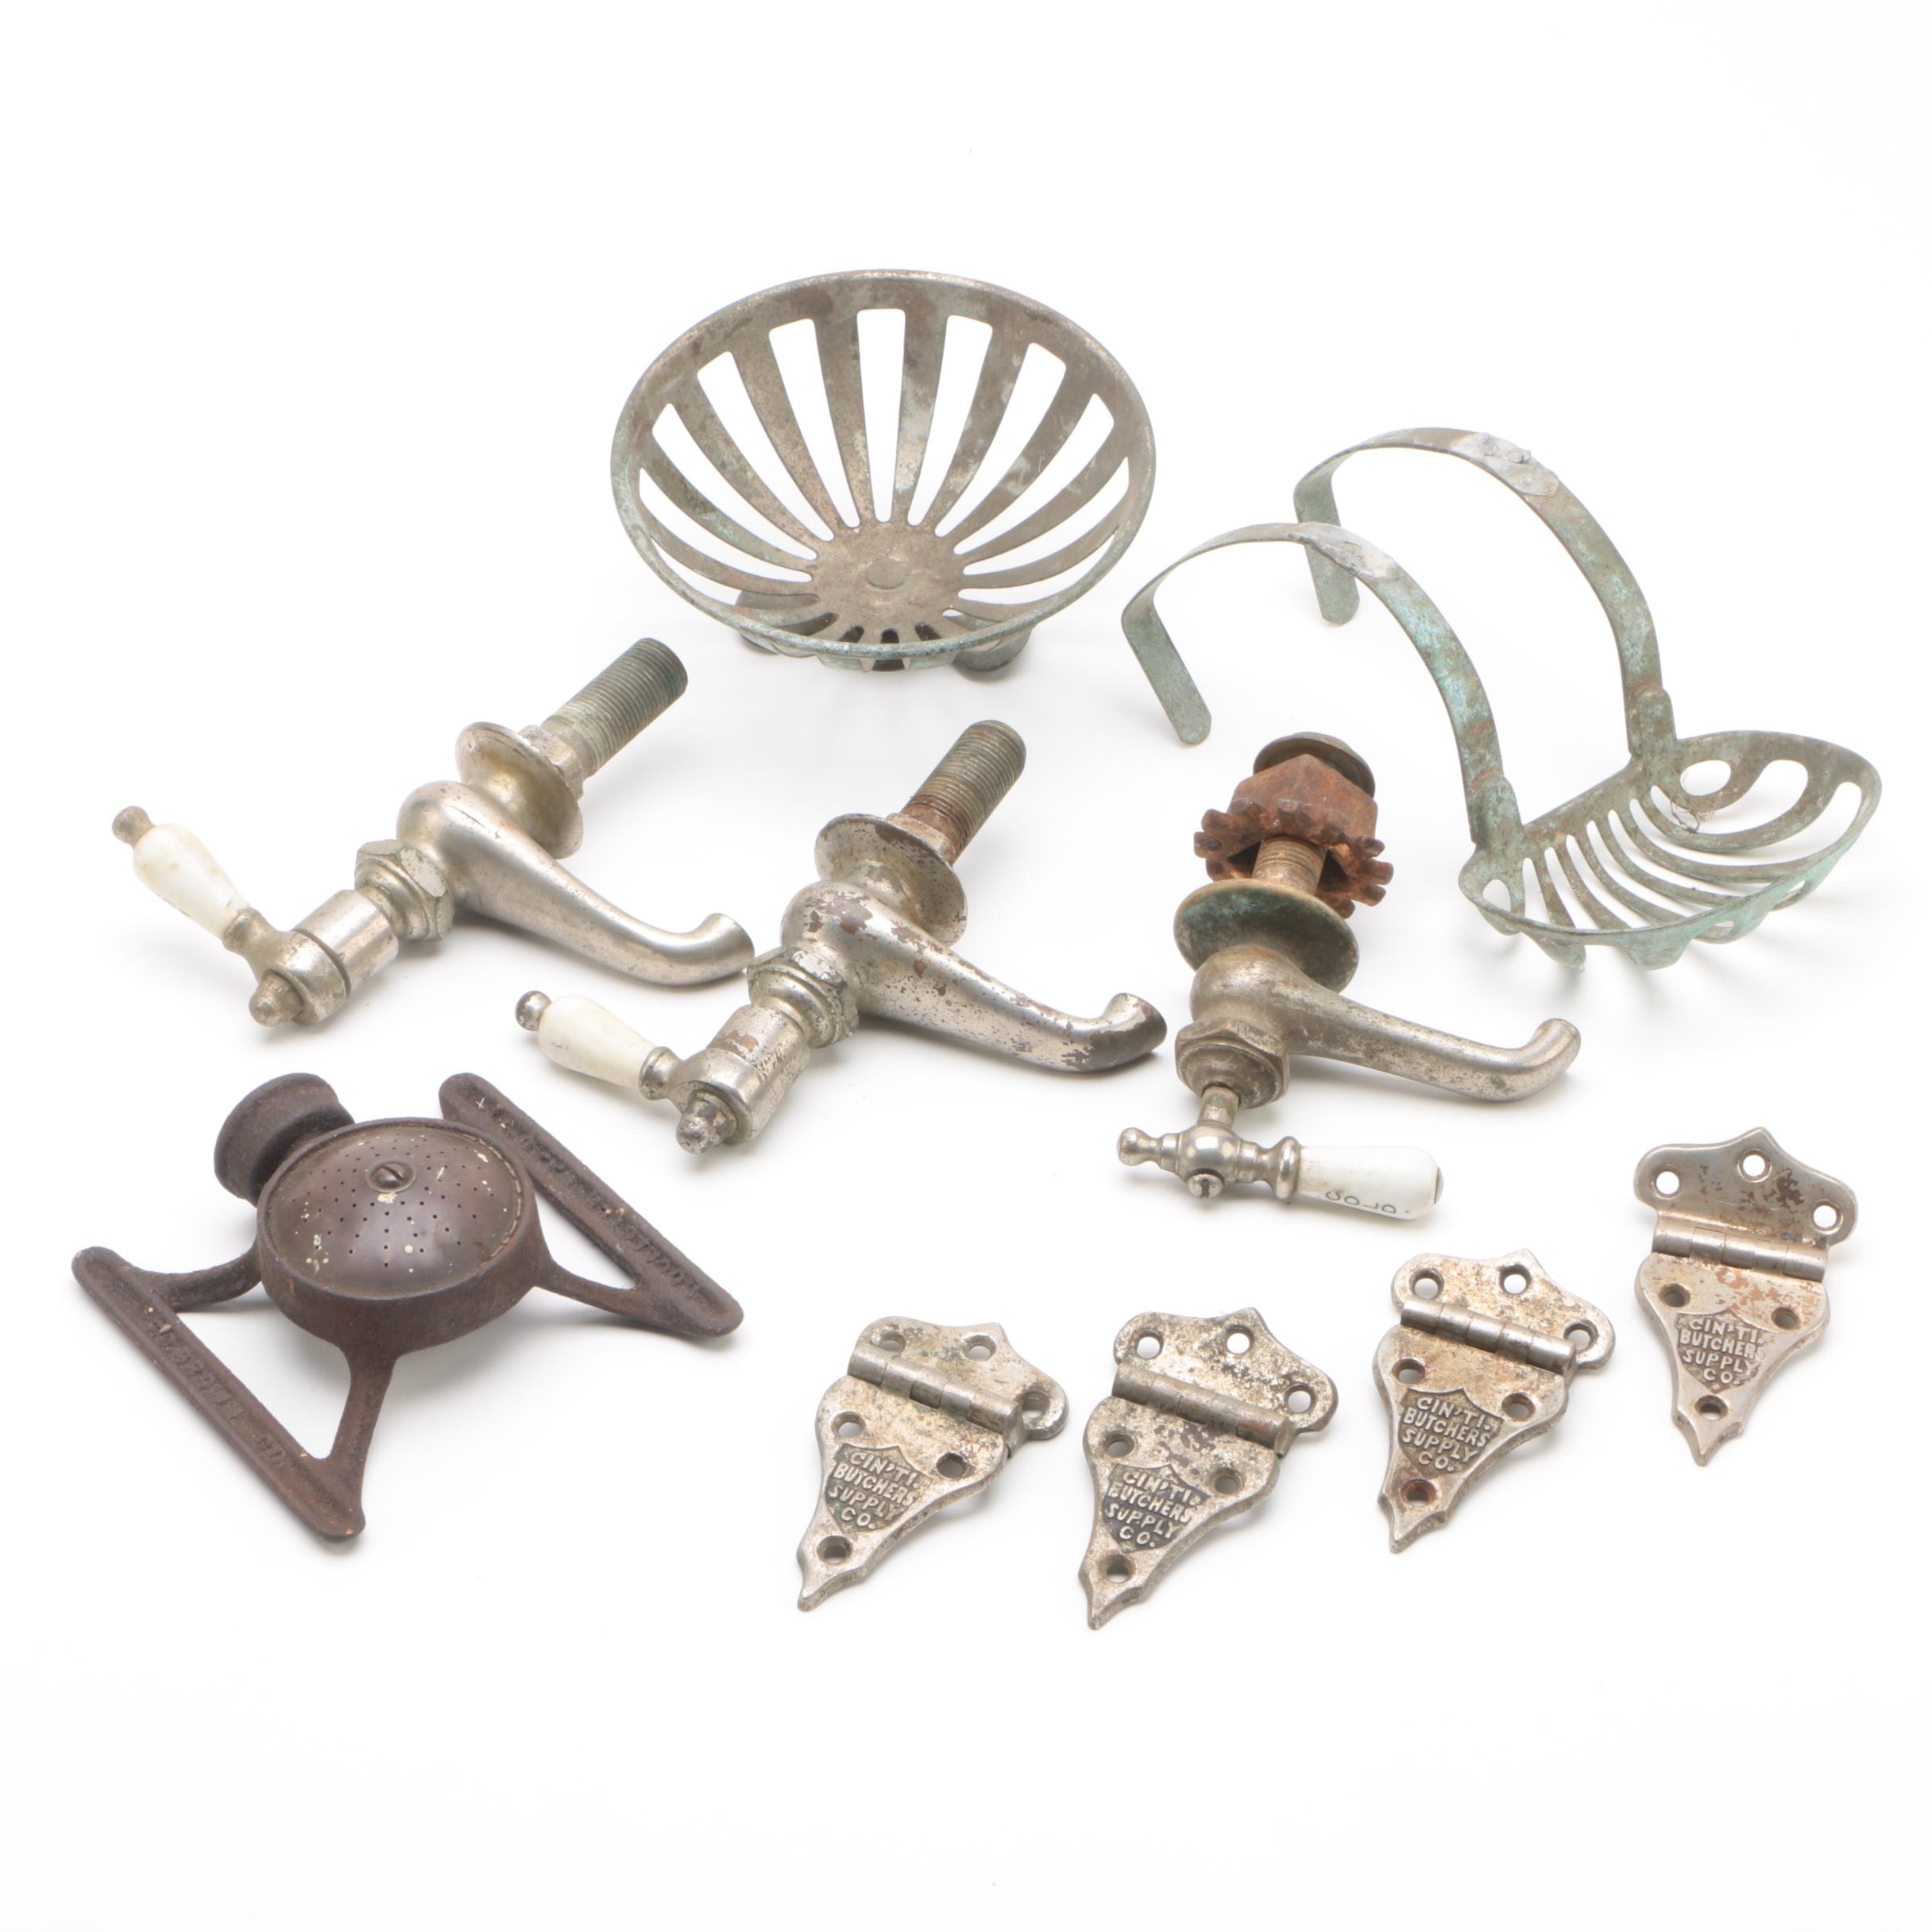 Vintage Faucet Taps, Cast Iron Sprinkler, Hinges and More